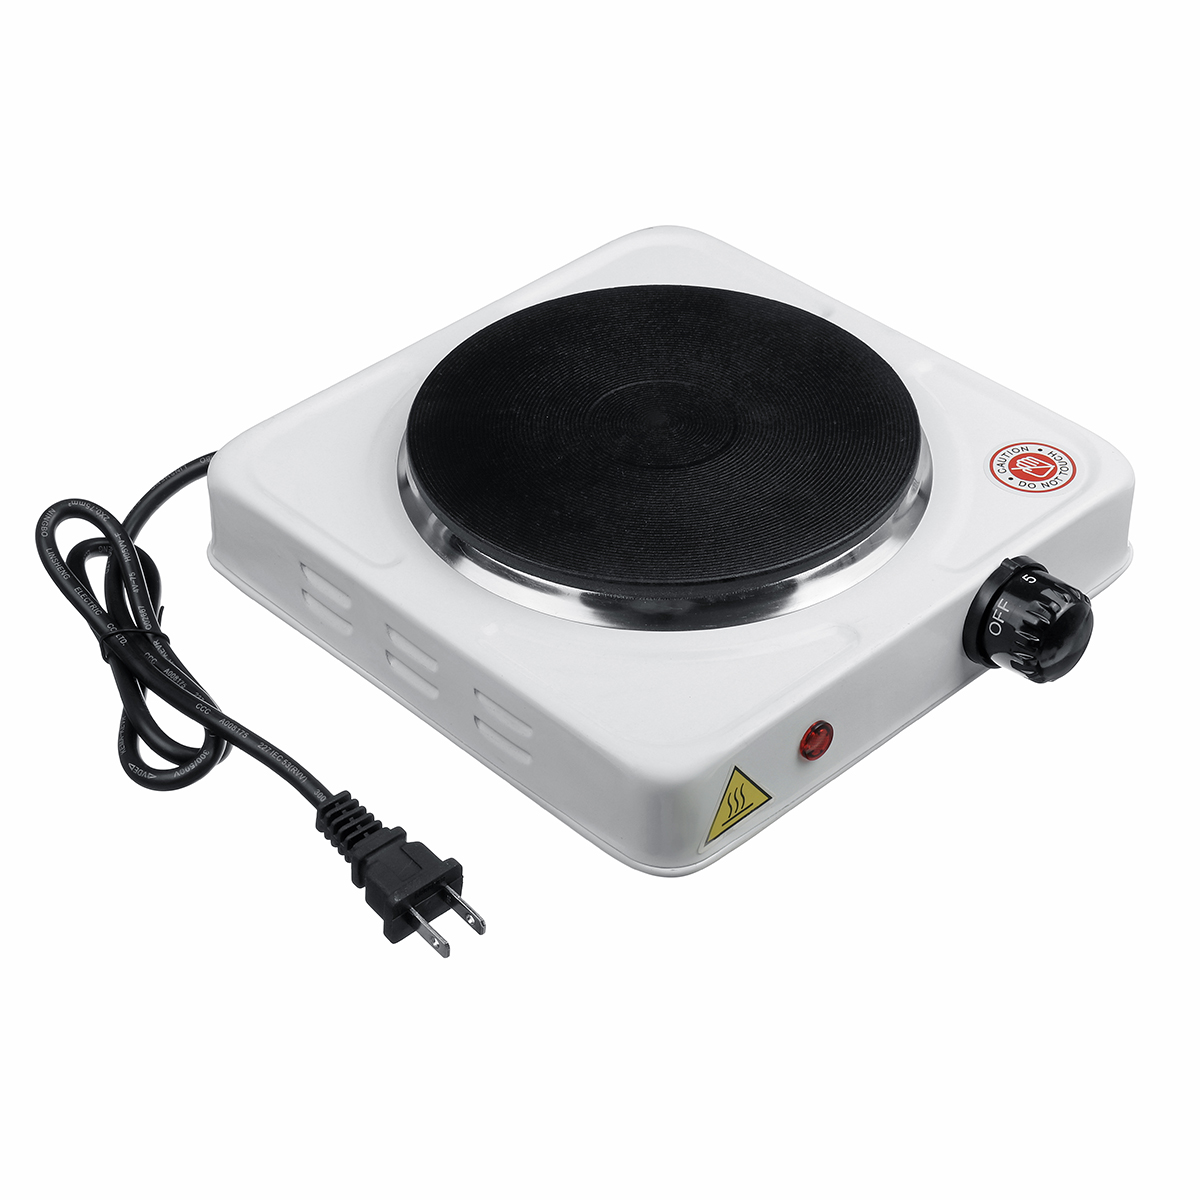 110V 1000W Mini Electric Stove Laboratory Electric Stove Adjustable Heating Furnace Heater Hot Plates